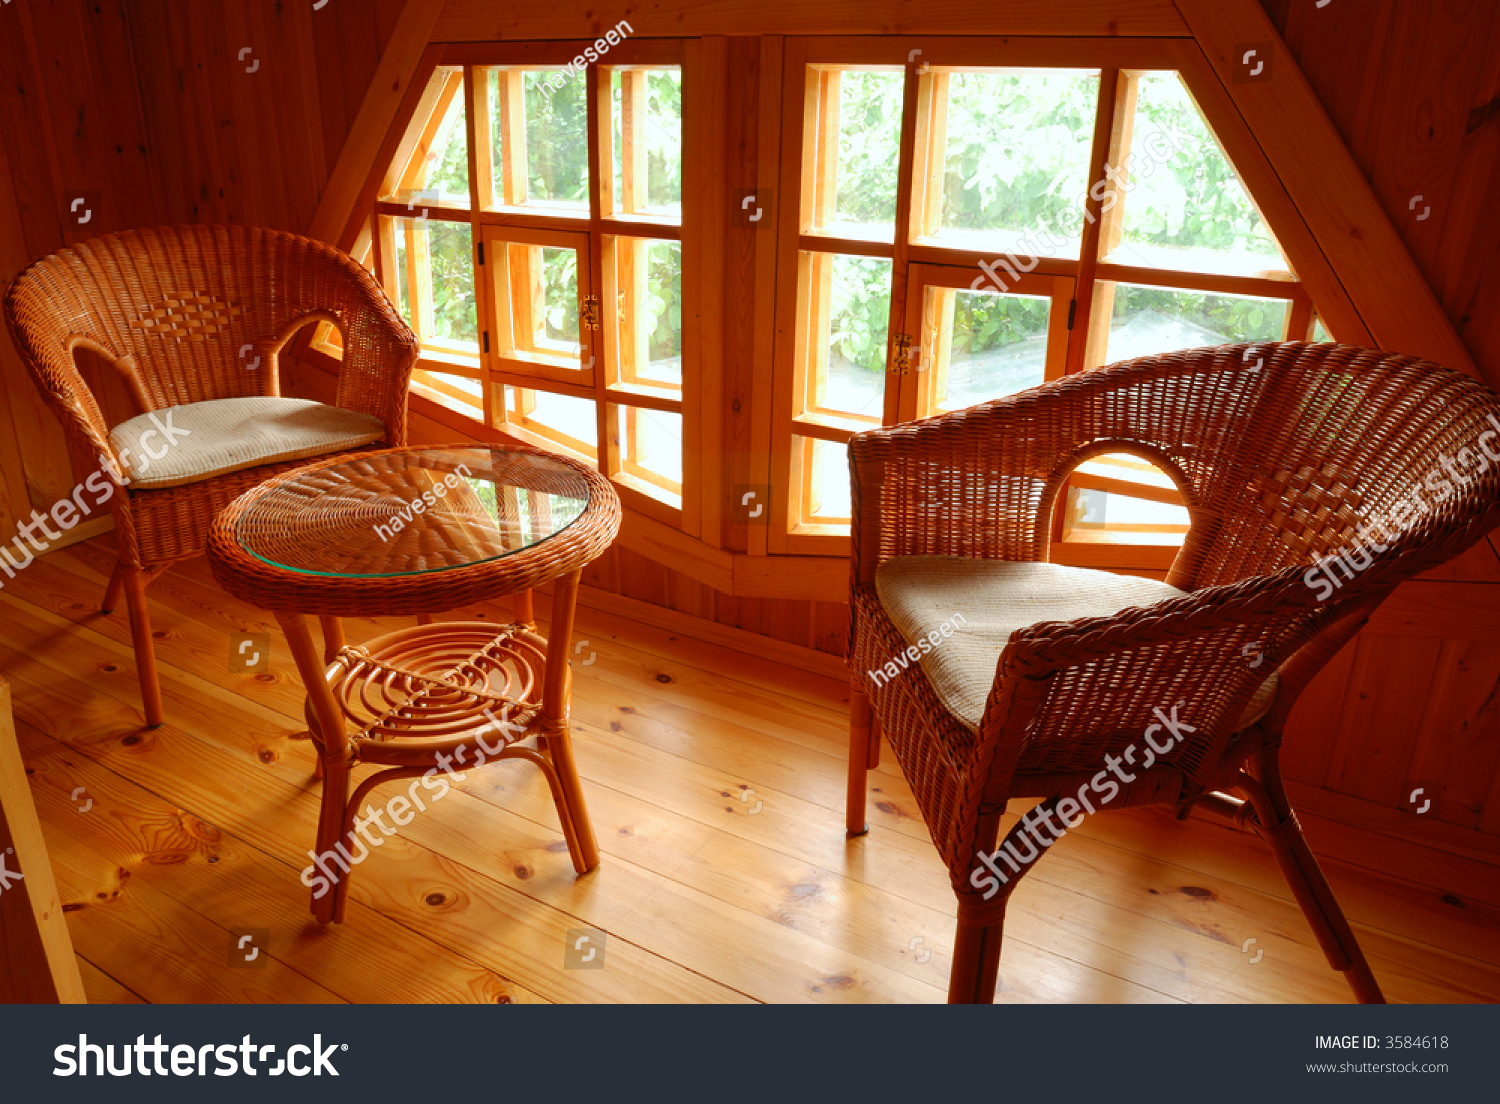 Patio Furniture Inside The House Stock Photo 3584618 Shutterstock